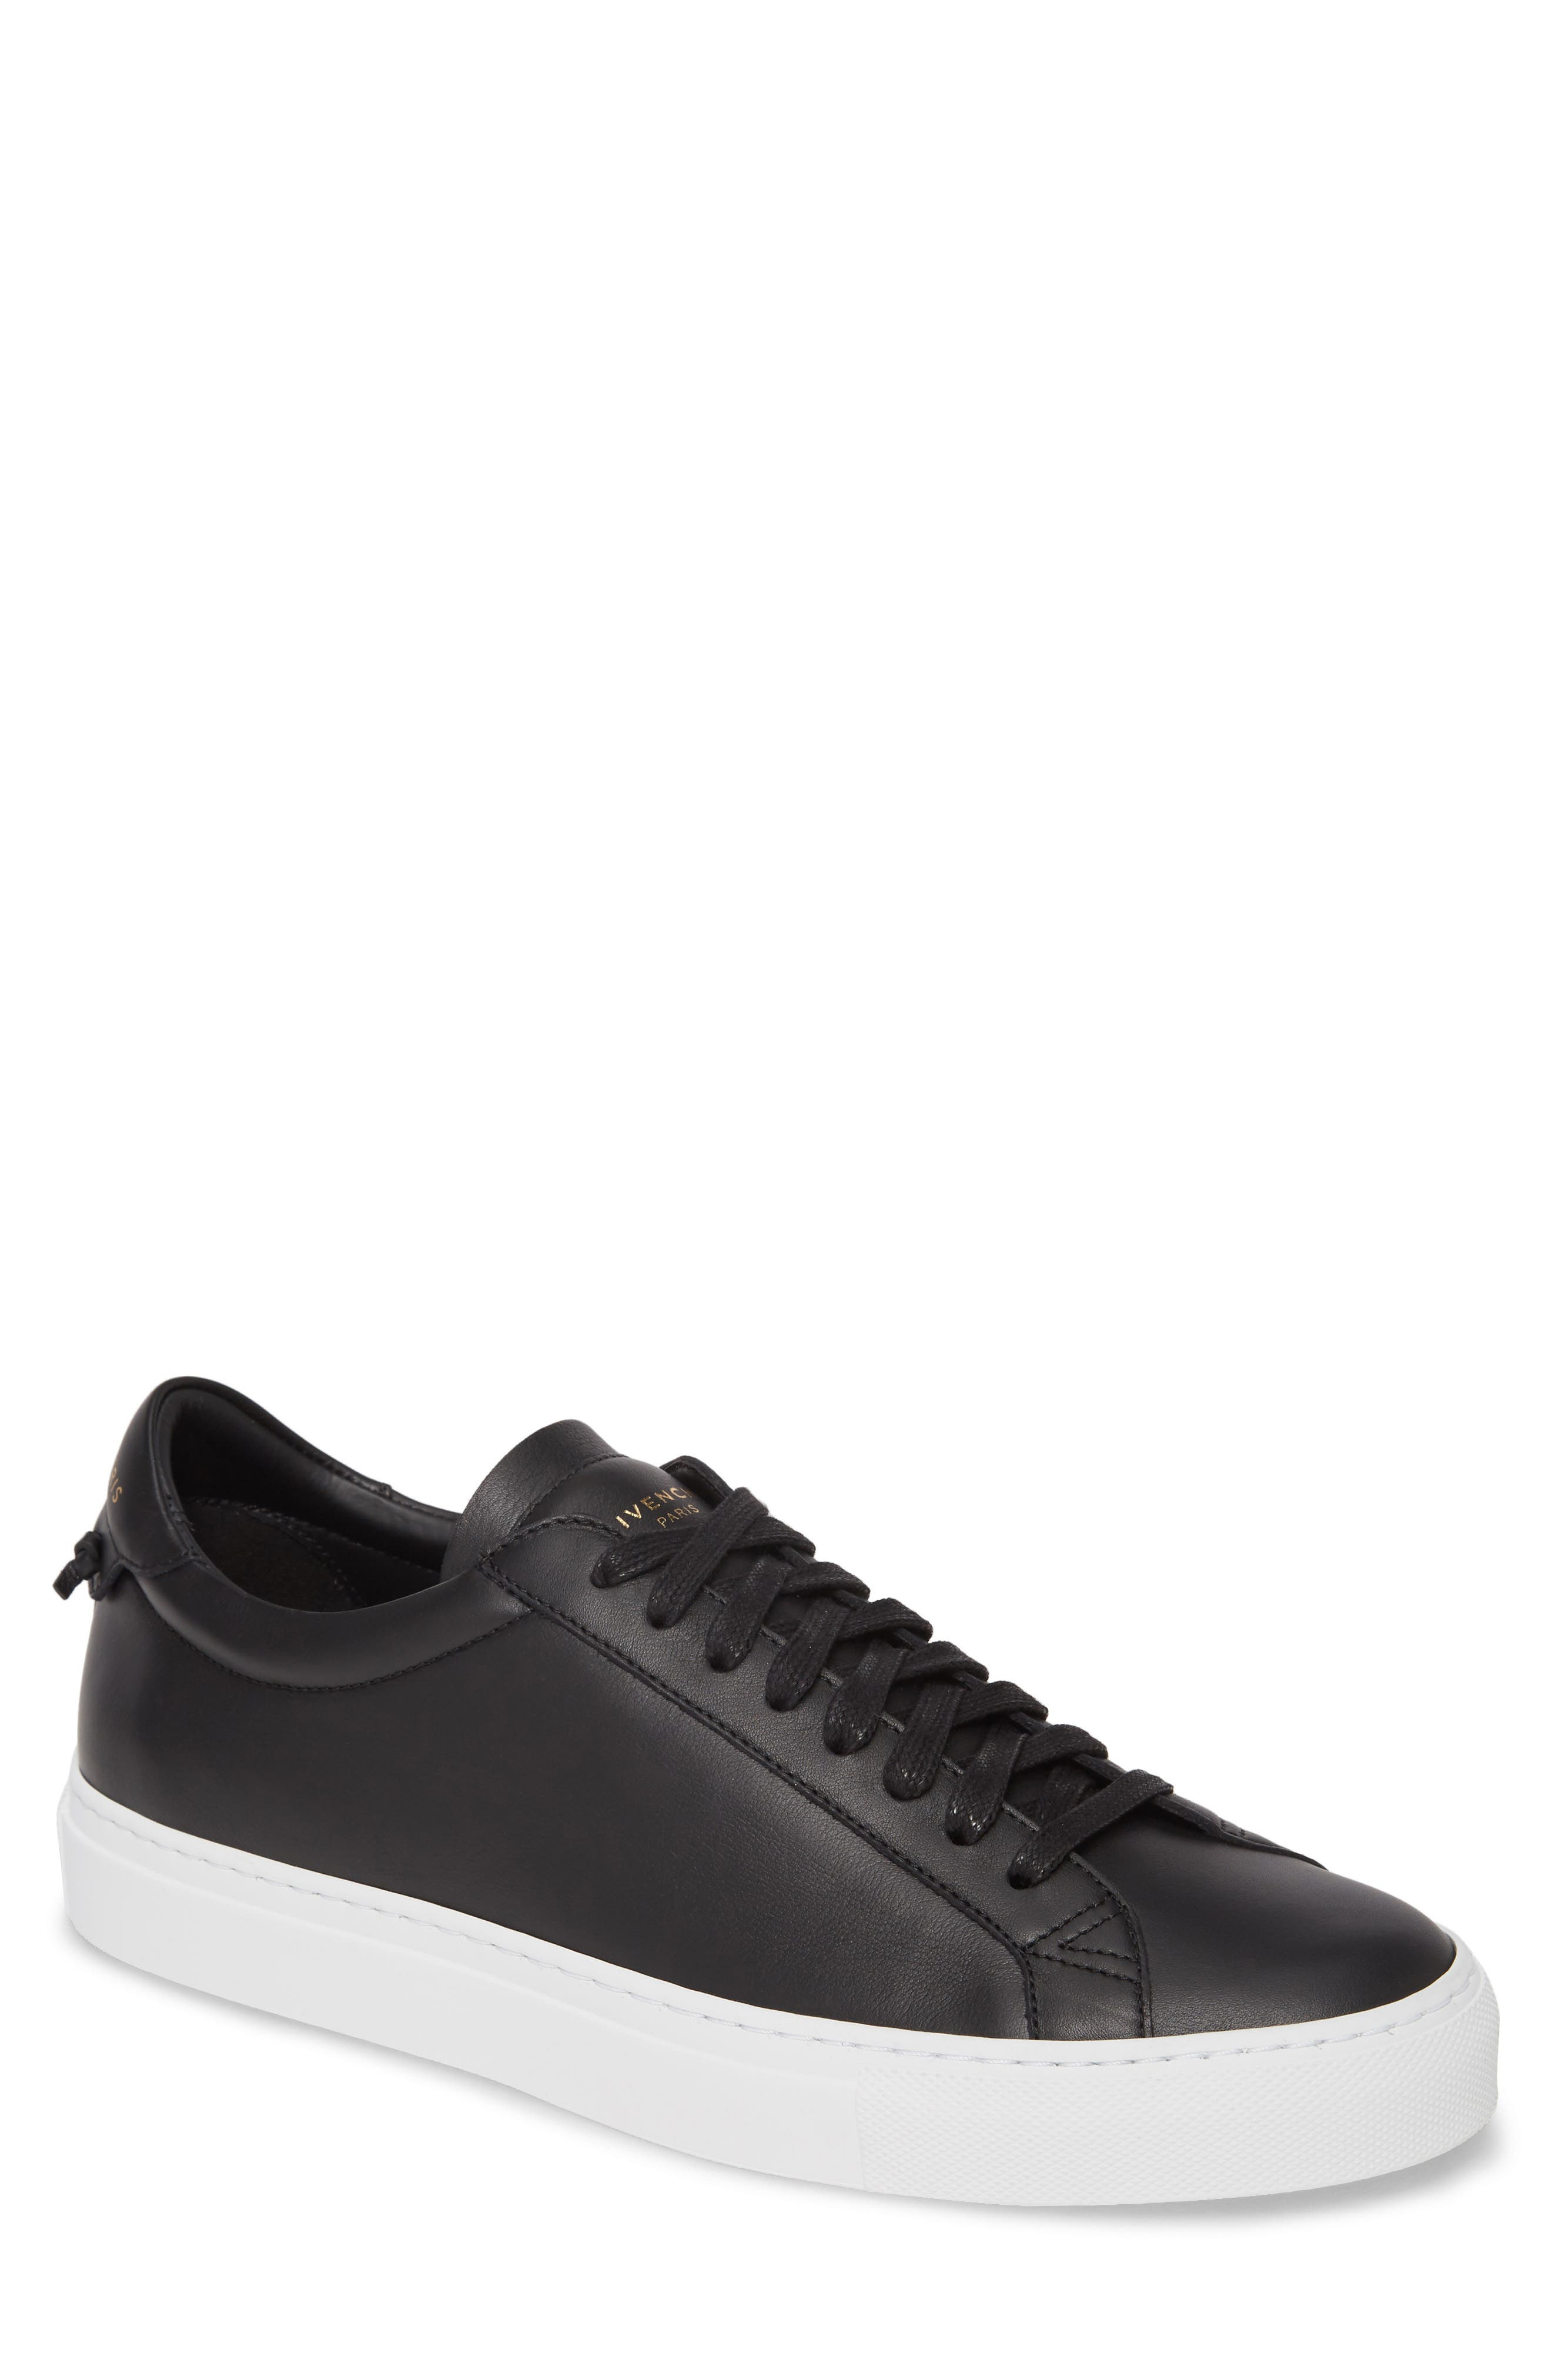 Givenchy Urban Knots Low Top Sneaker